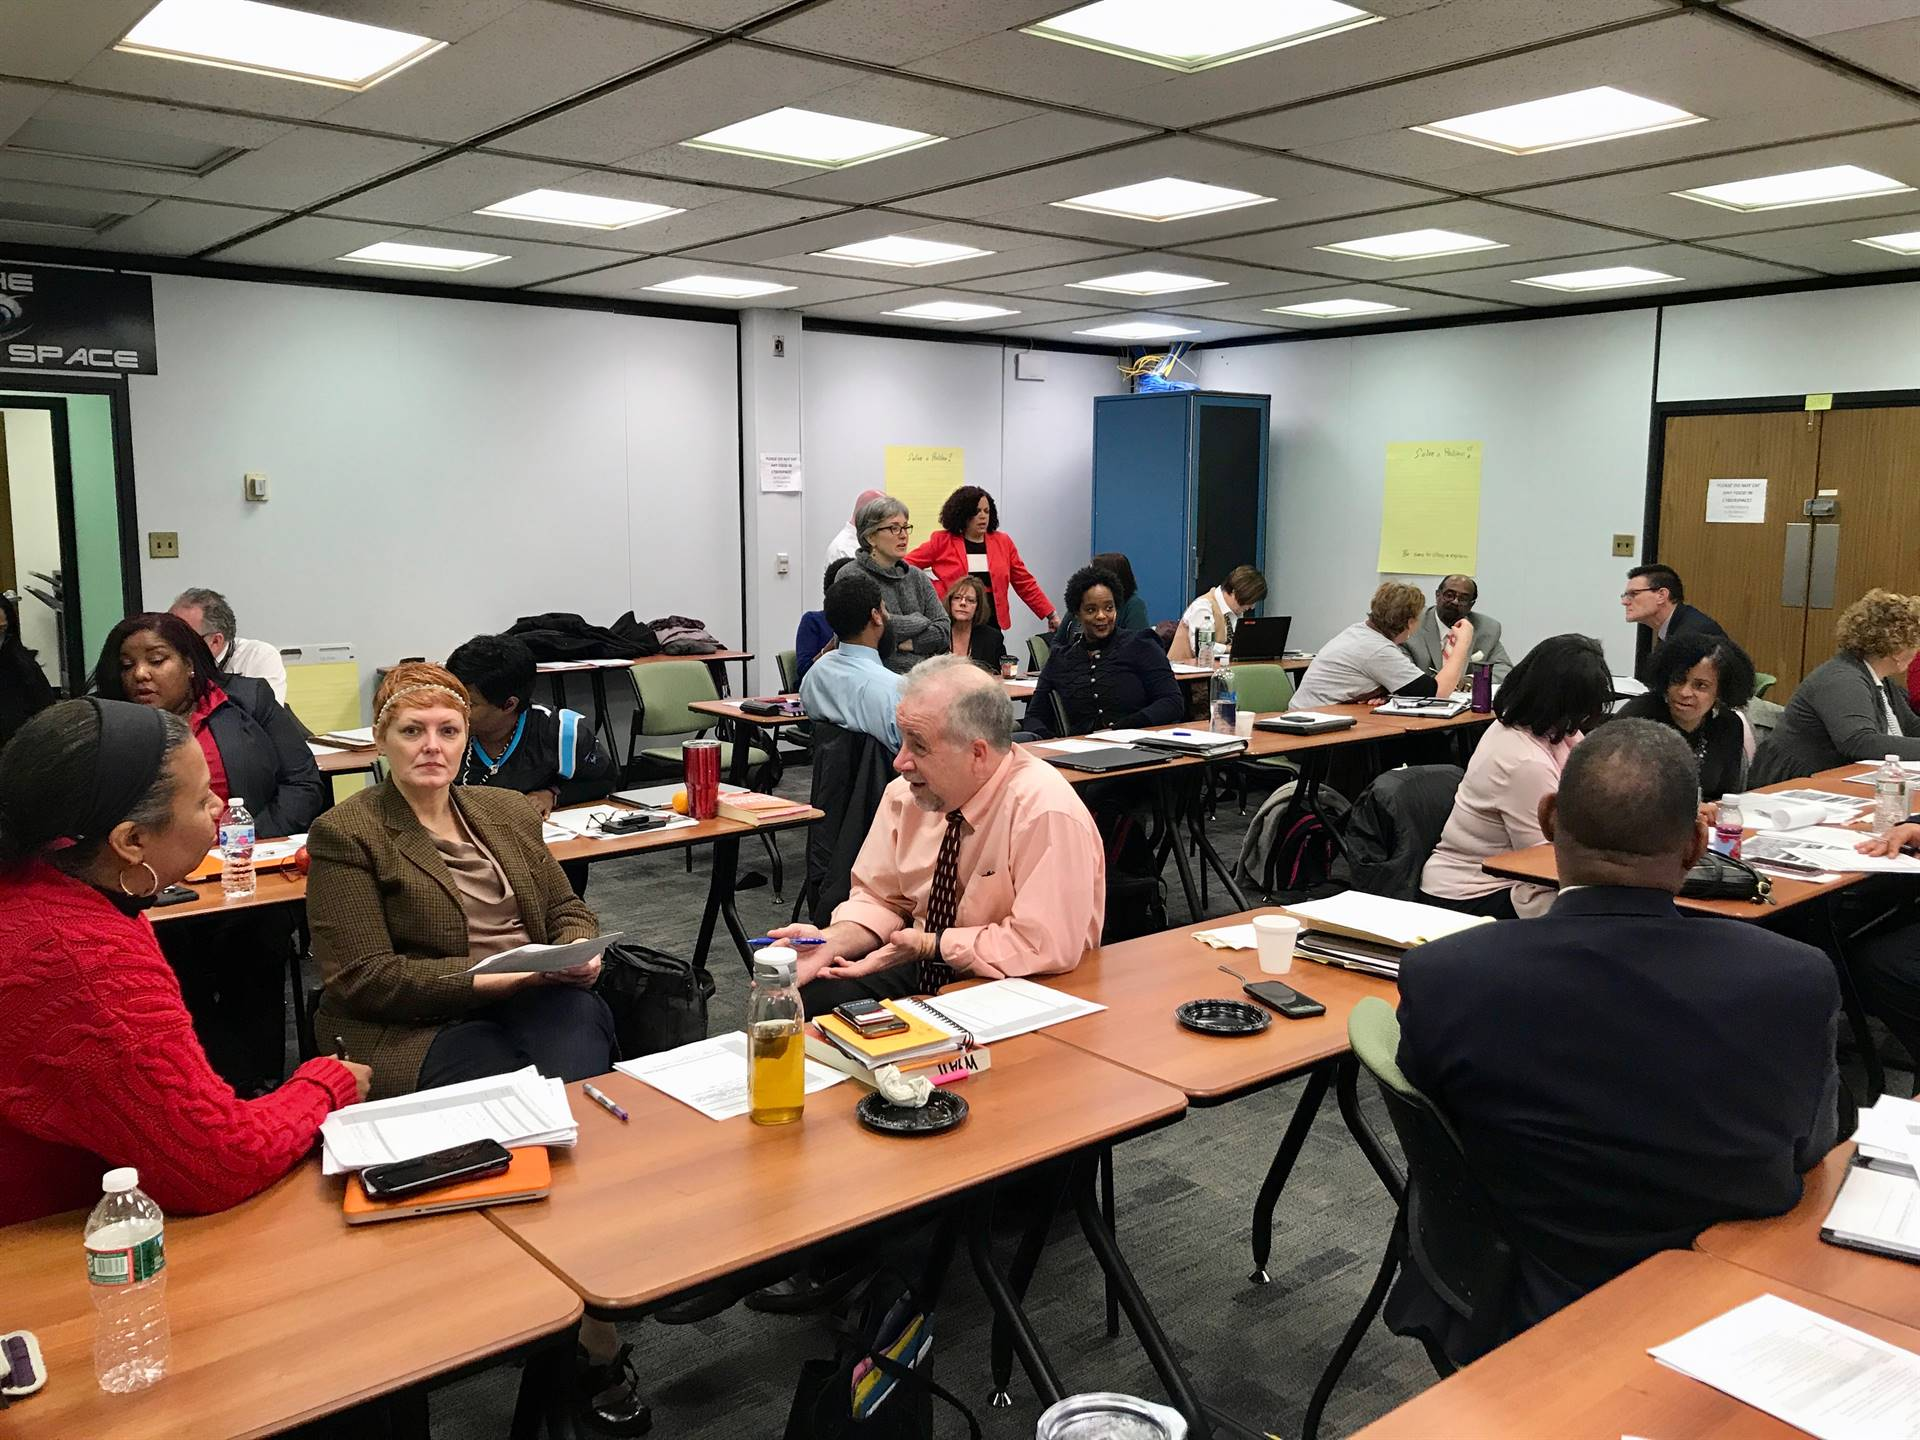 02-01-18 Principals' PD Meeting